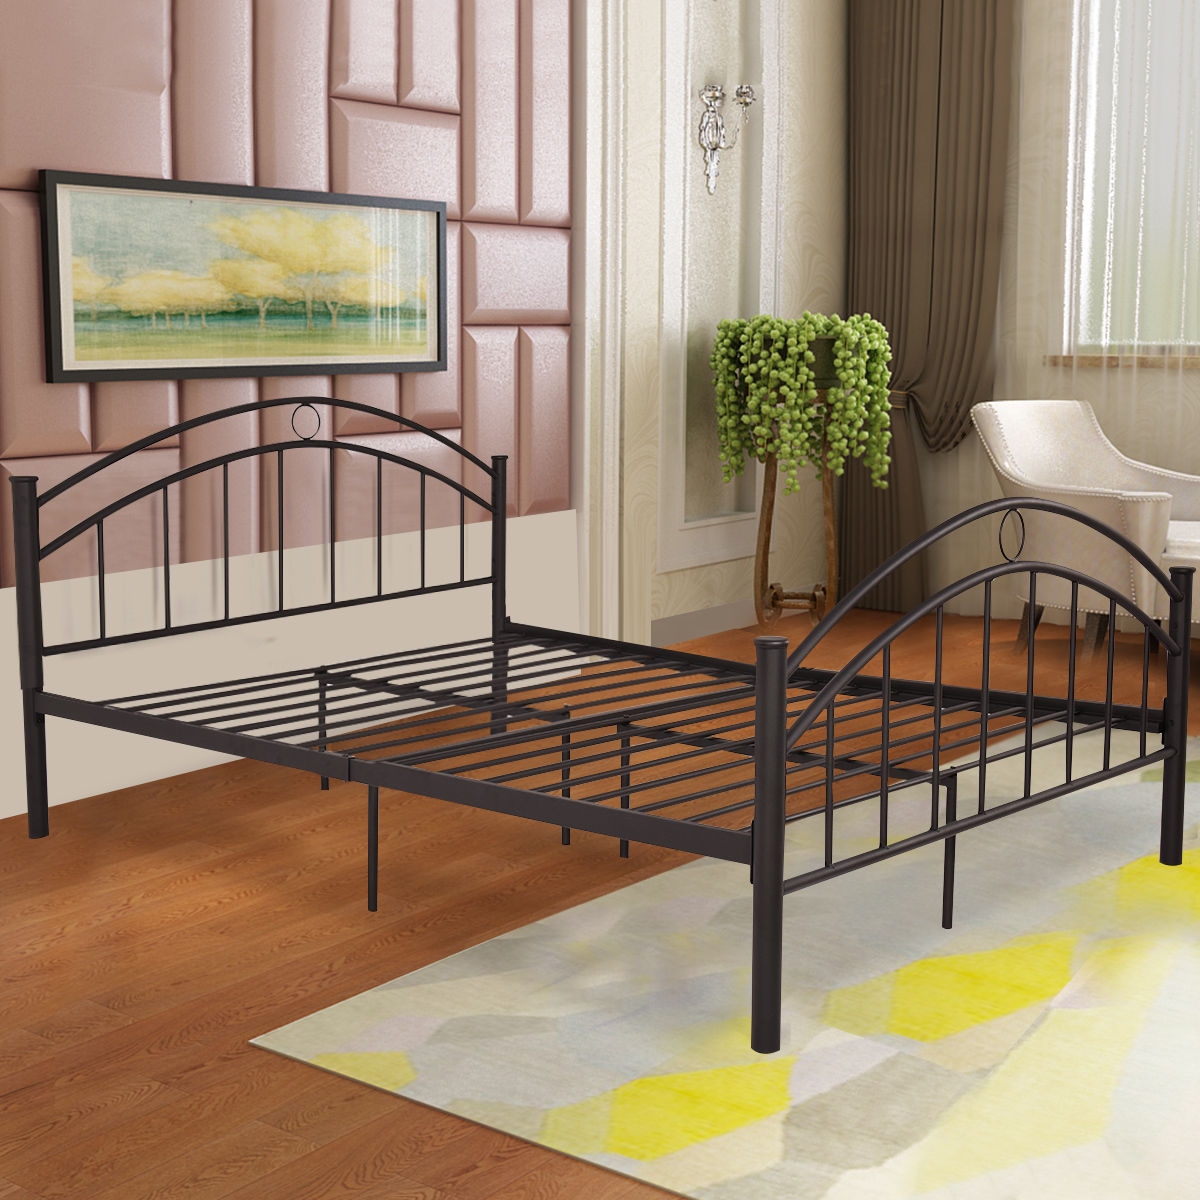 Online Shop for bed headboards queen Wholesale with Best Price